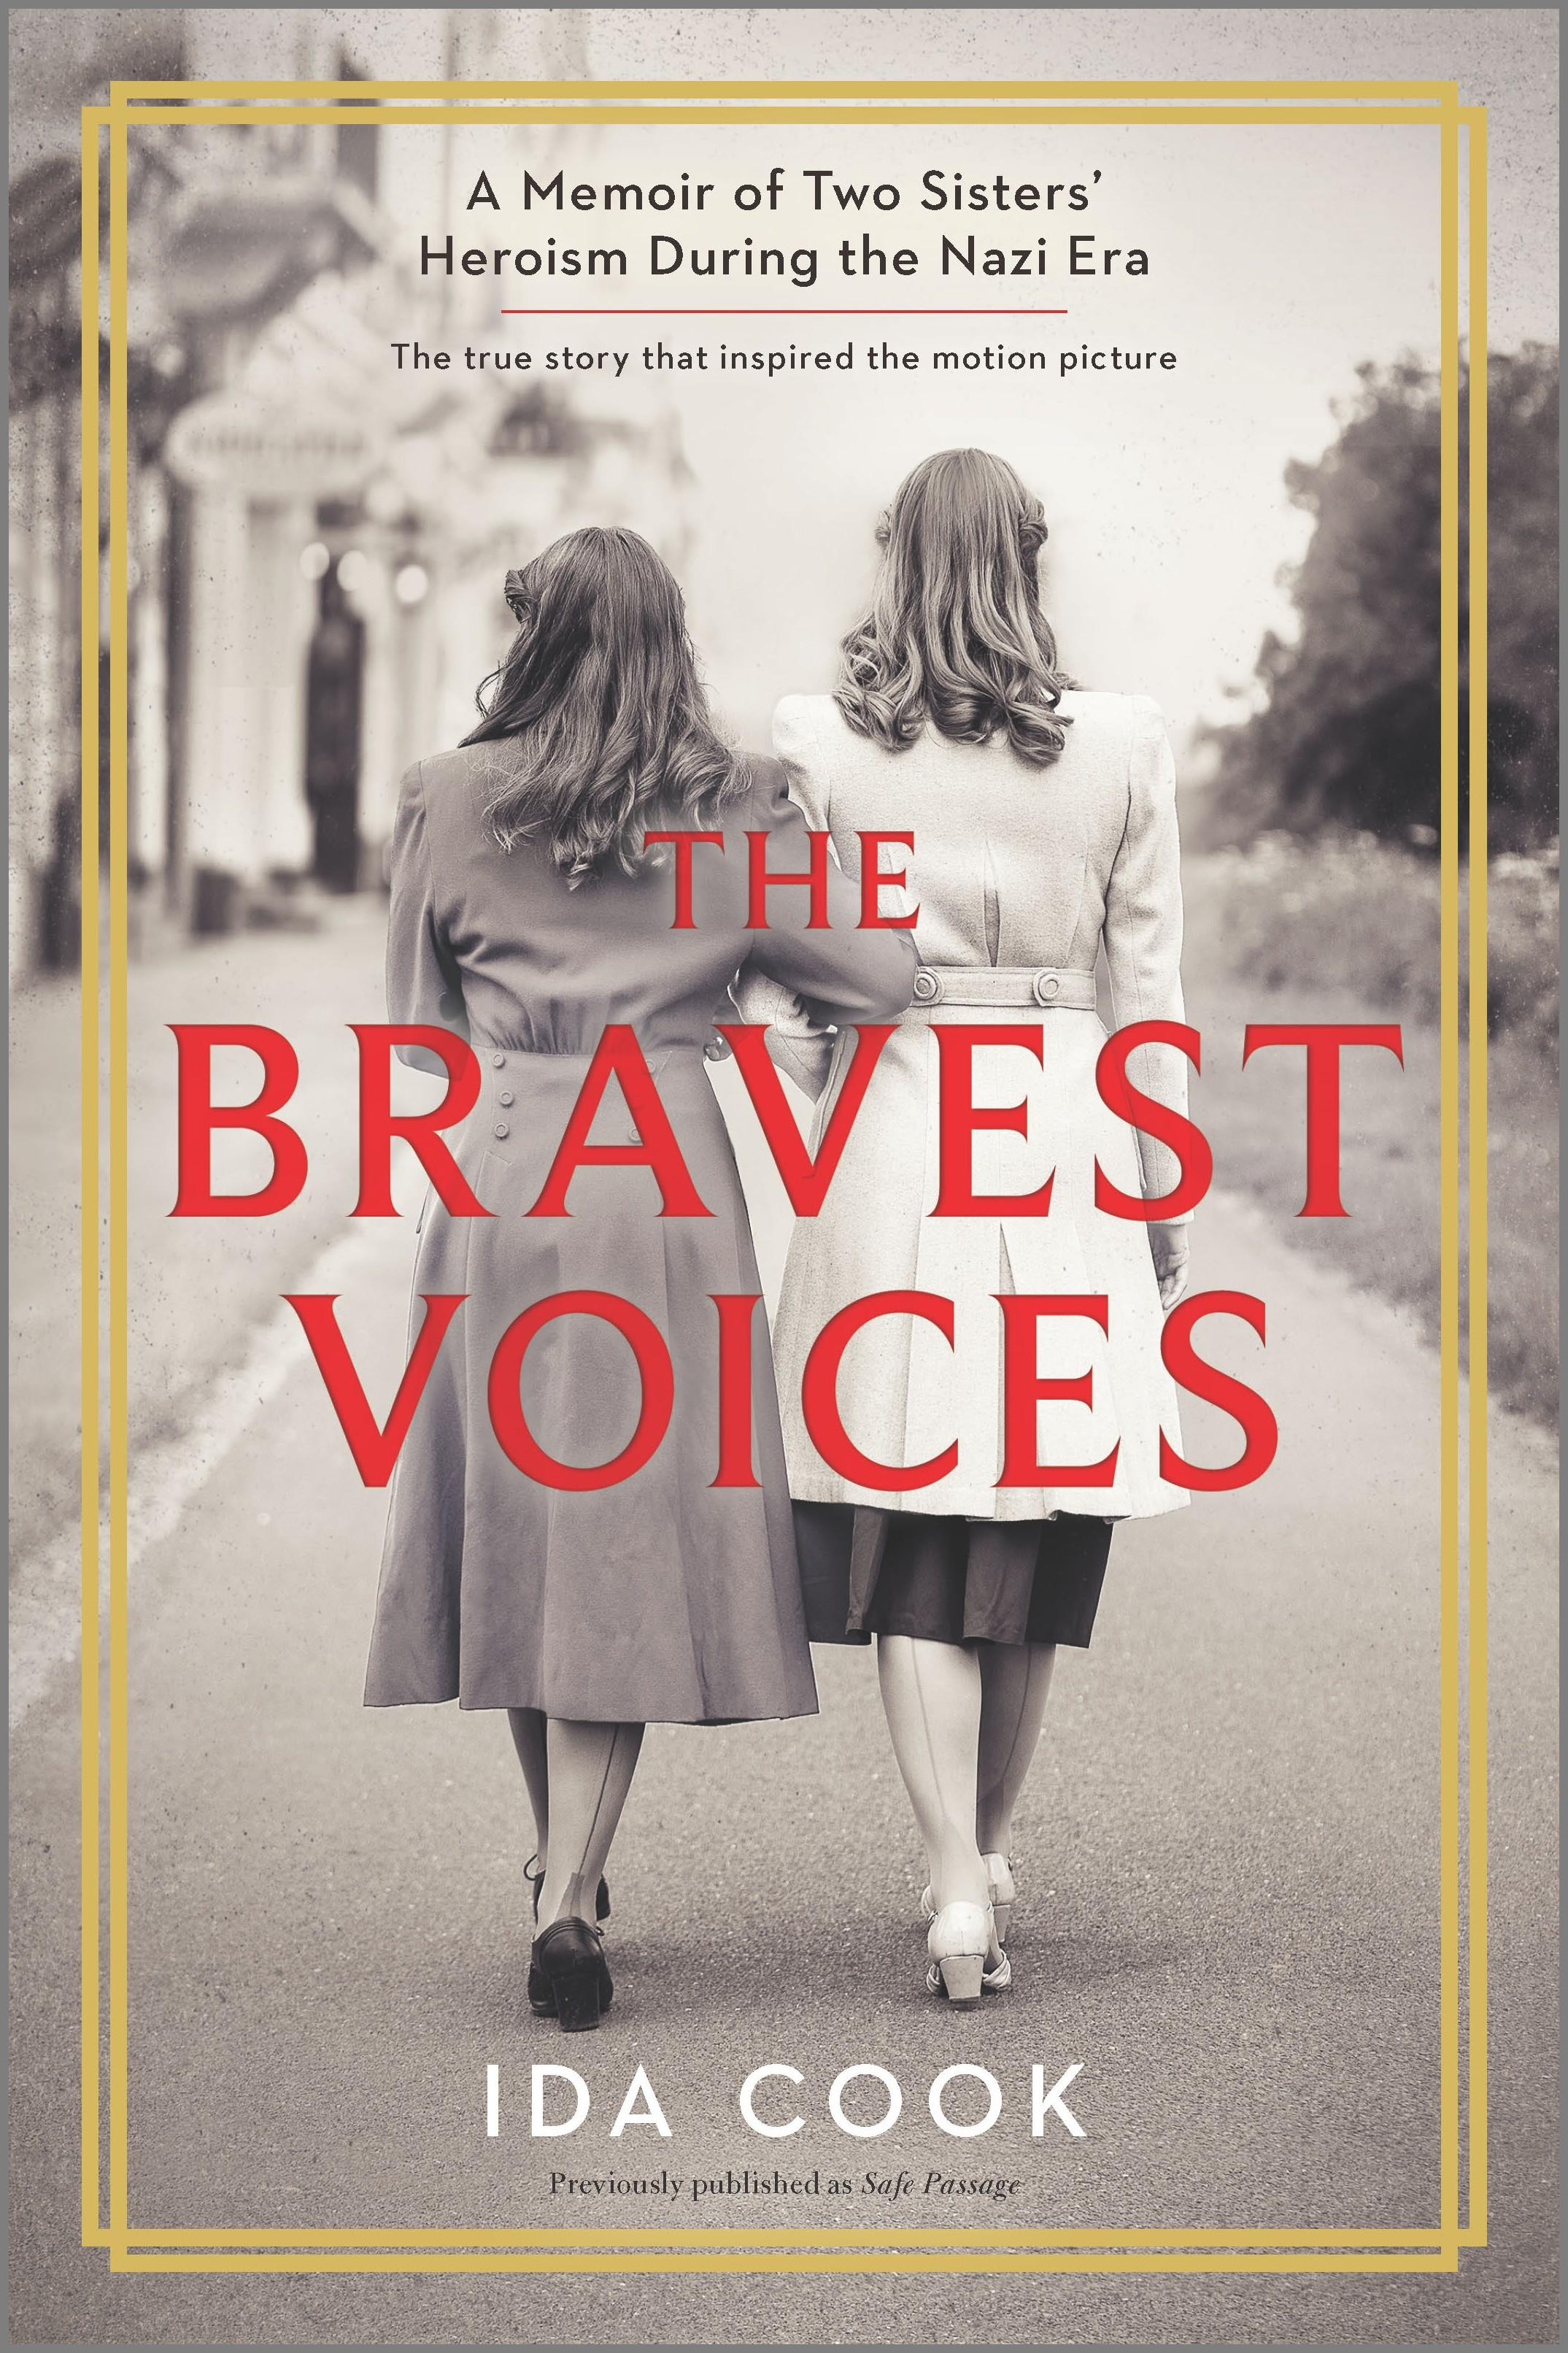 The Bravest Voices A Memoir of Two Sisters' Heroism During the Nazi Era